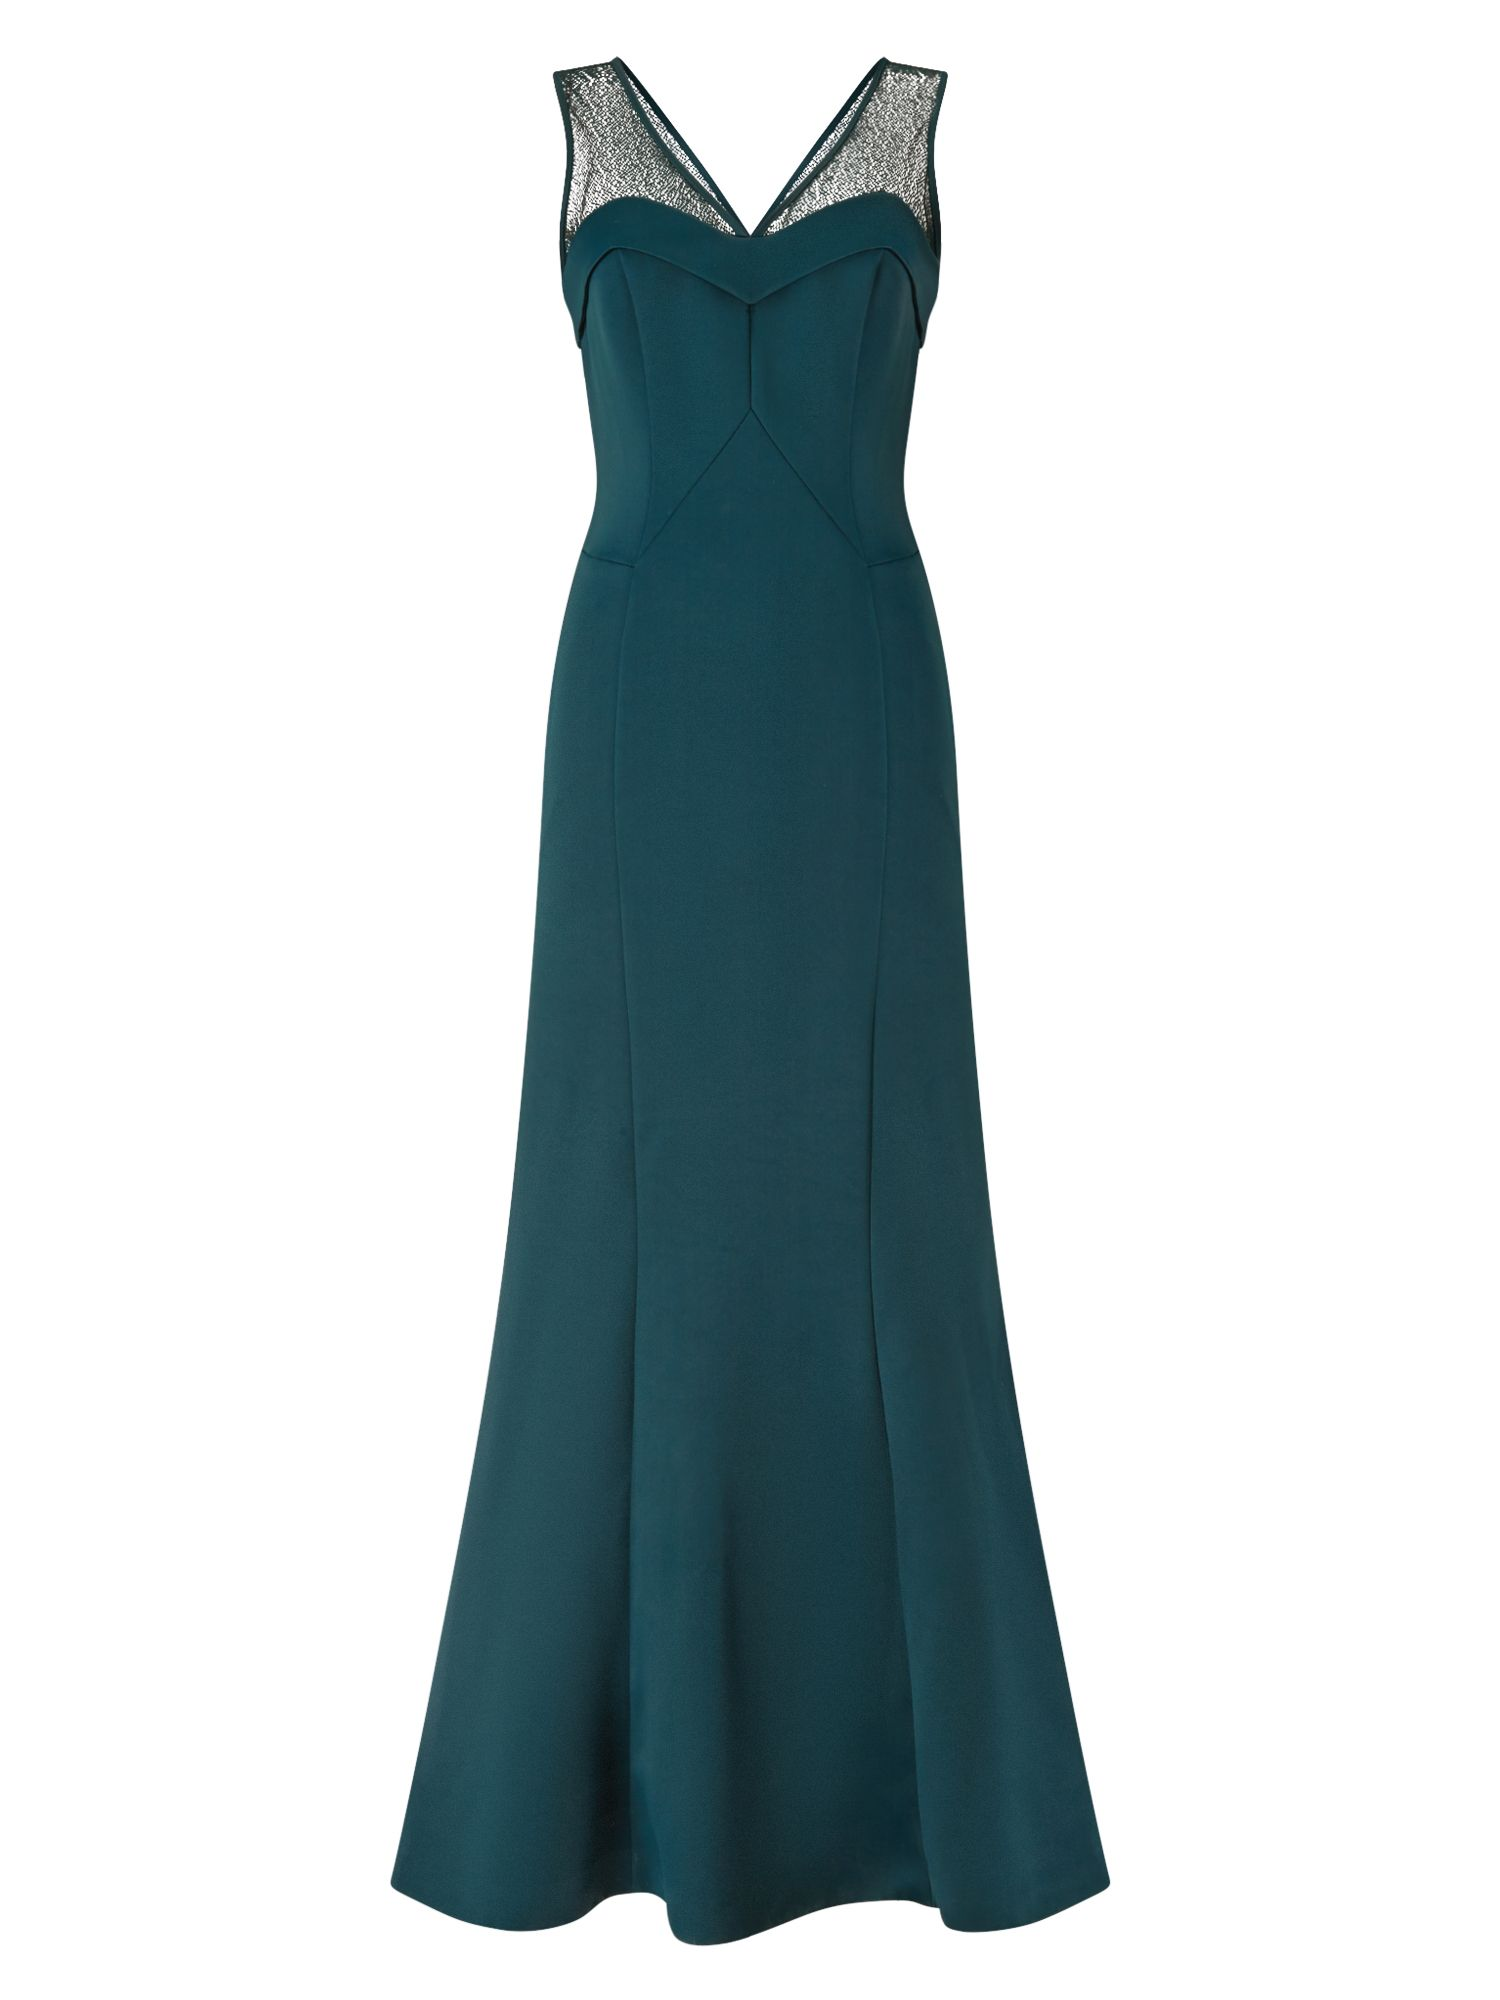 Black Evening Dress House Of Fraser 10